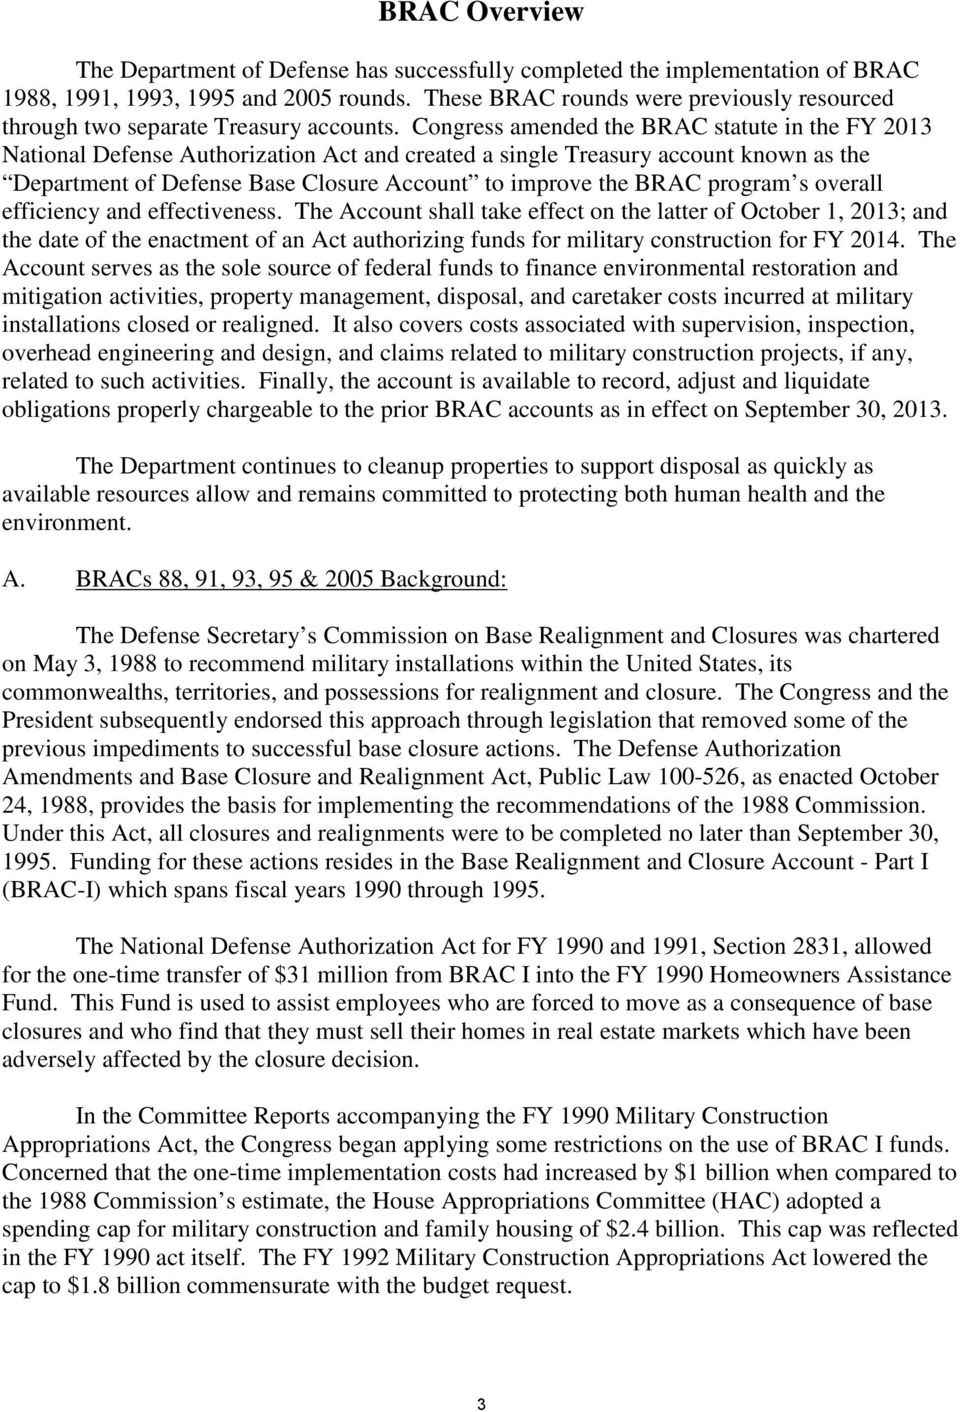 Congress amended the BRAC statute in the FY 2013 National Defense Authorization Act and created a single Treasury account known as the Department of Defense Base Closure Account to improve the BRAC